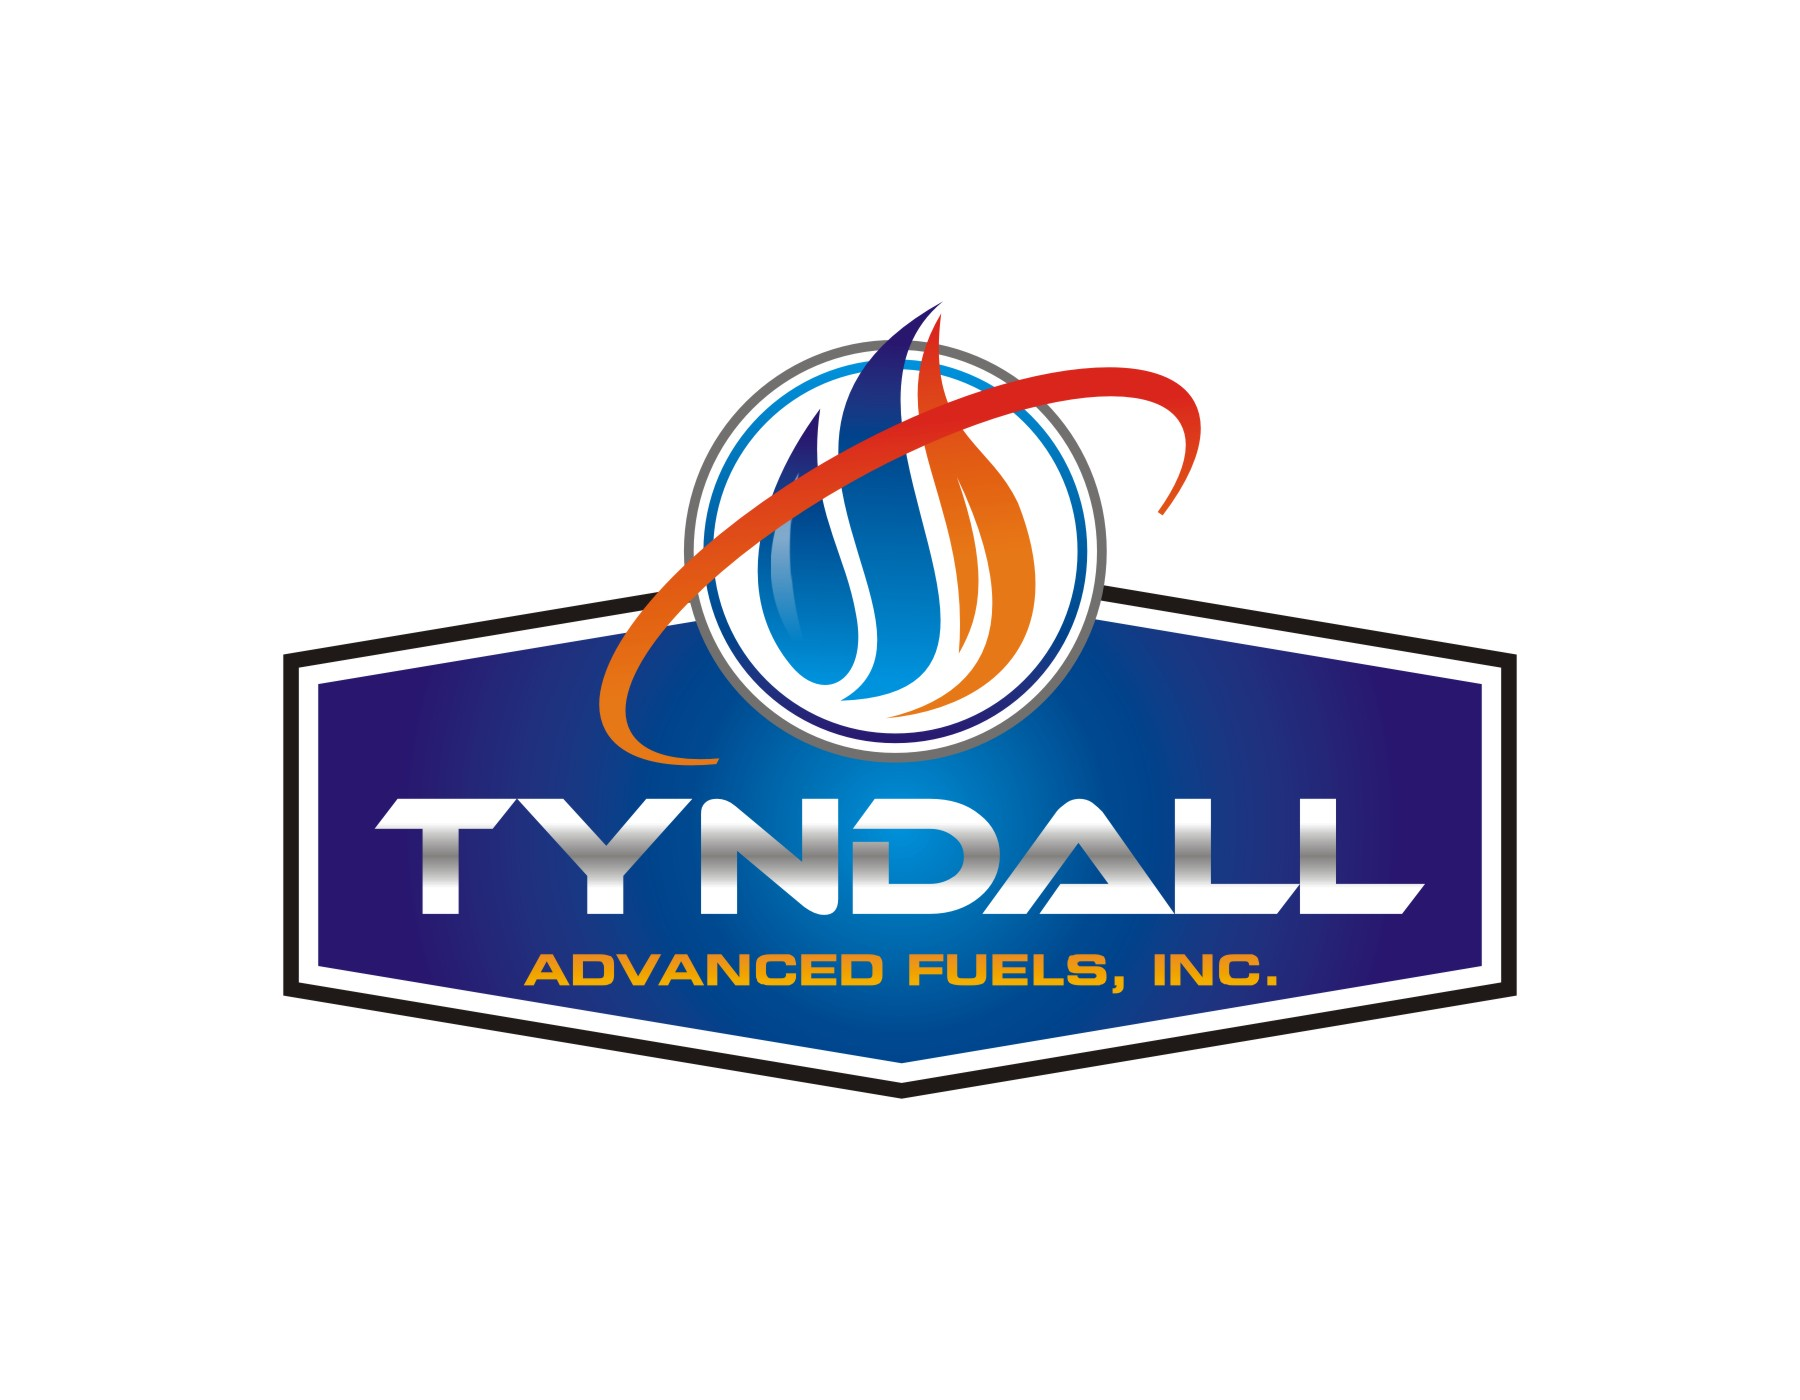 Logo Design by Spider Graphics - Entry No. 43 in the Logo Design Contest Imaginative Logo Design for Tyndall Plumbing & Heating.